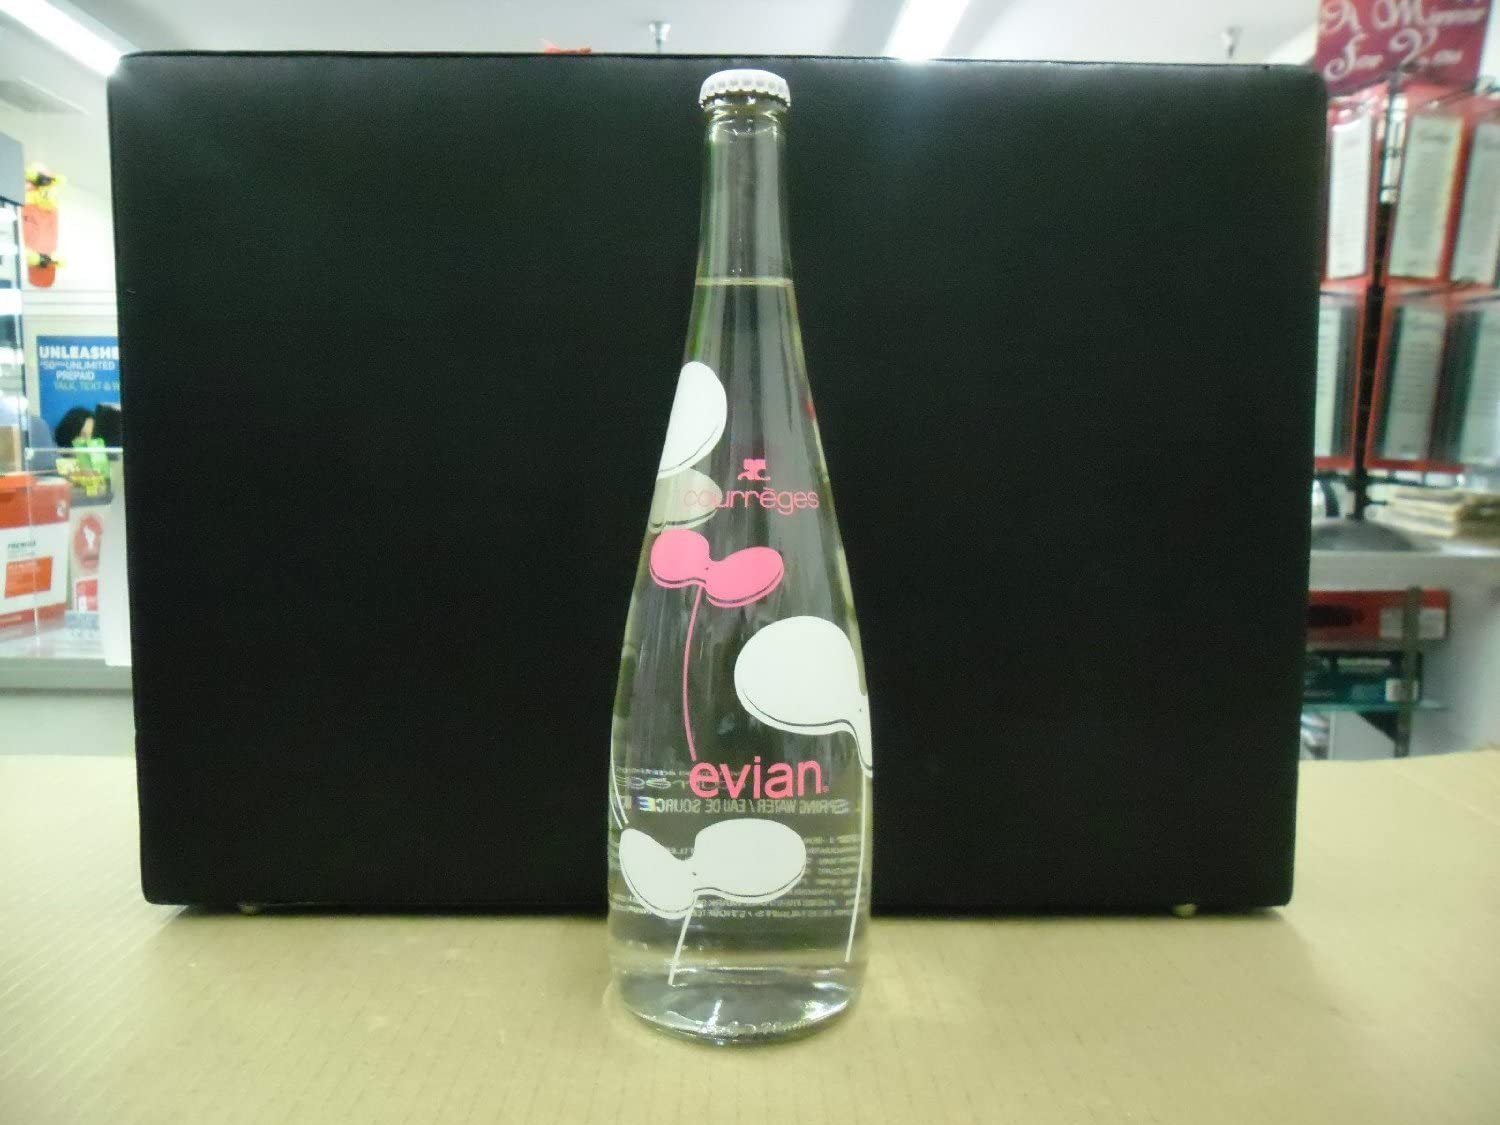 Amazon Com Evian Andre Courreges Fashion Designer Art Limited Edition 2012 Glass Luxury Water Bottle France Home Improvement